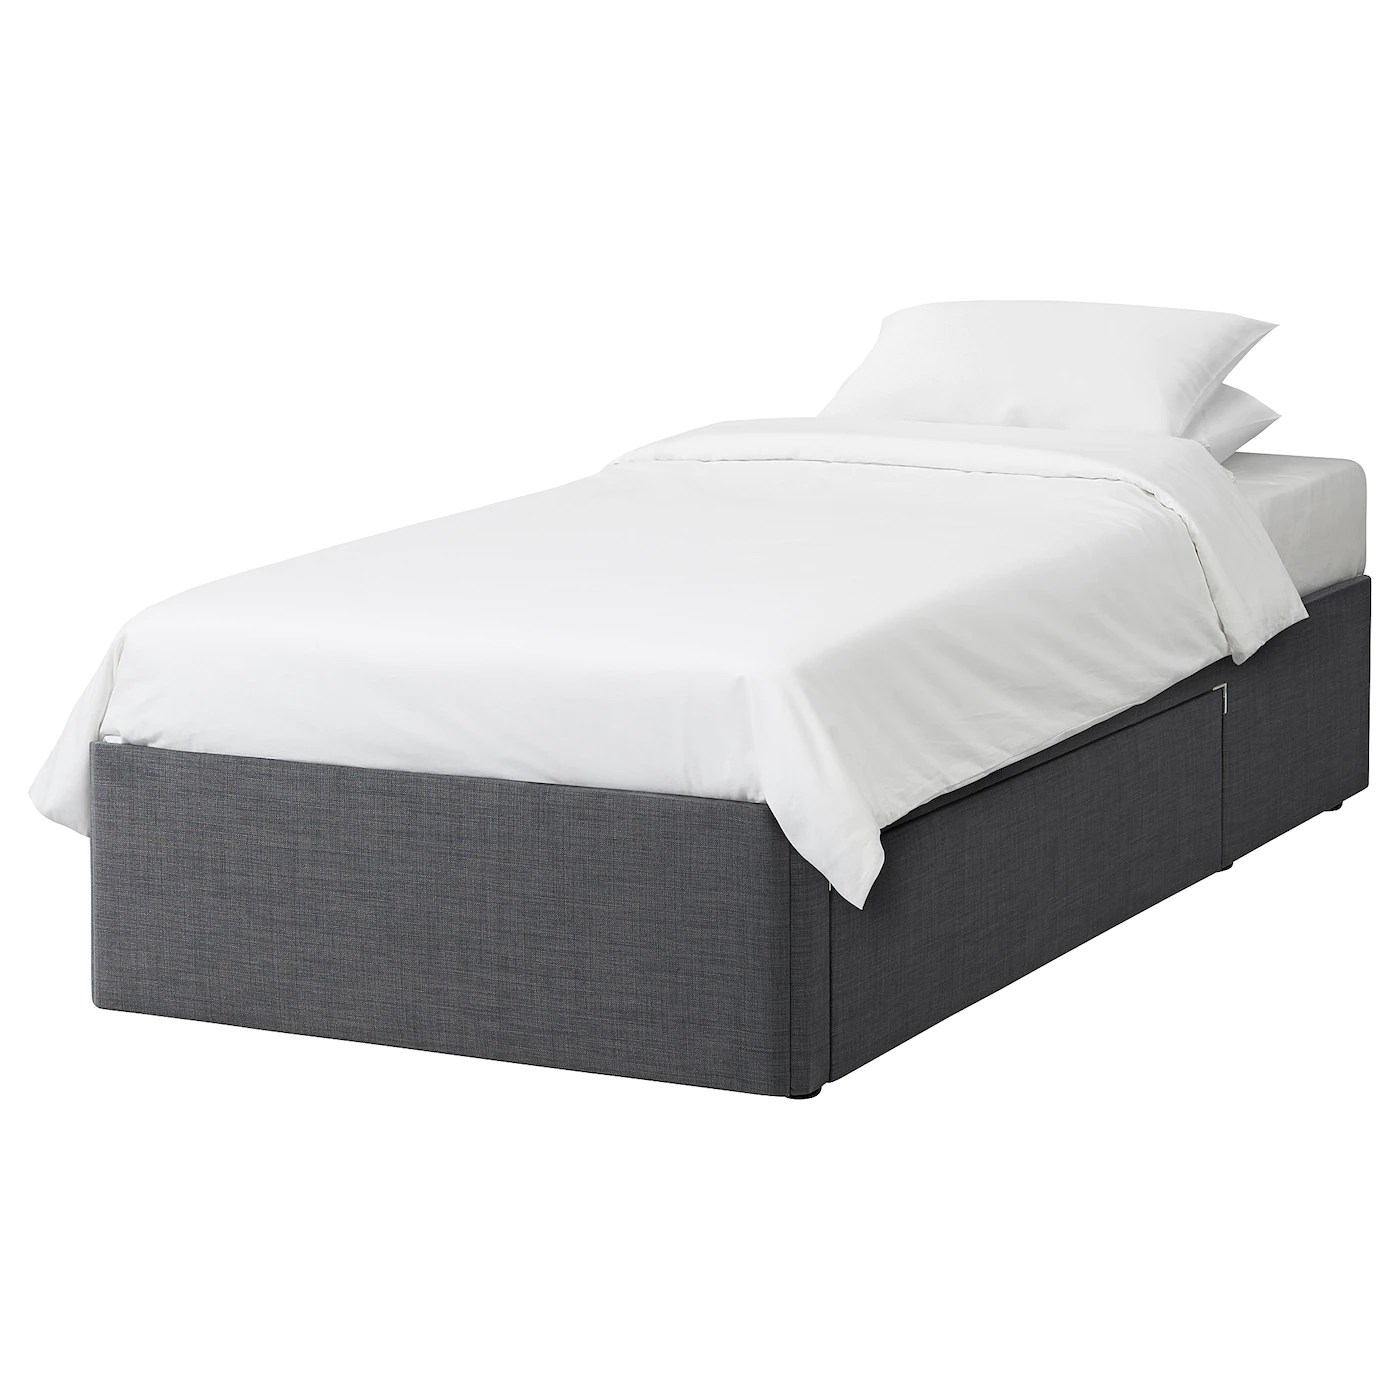 Divan Beds Cheap Divan Beds Divan Bed Bases Ikea